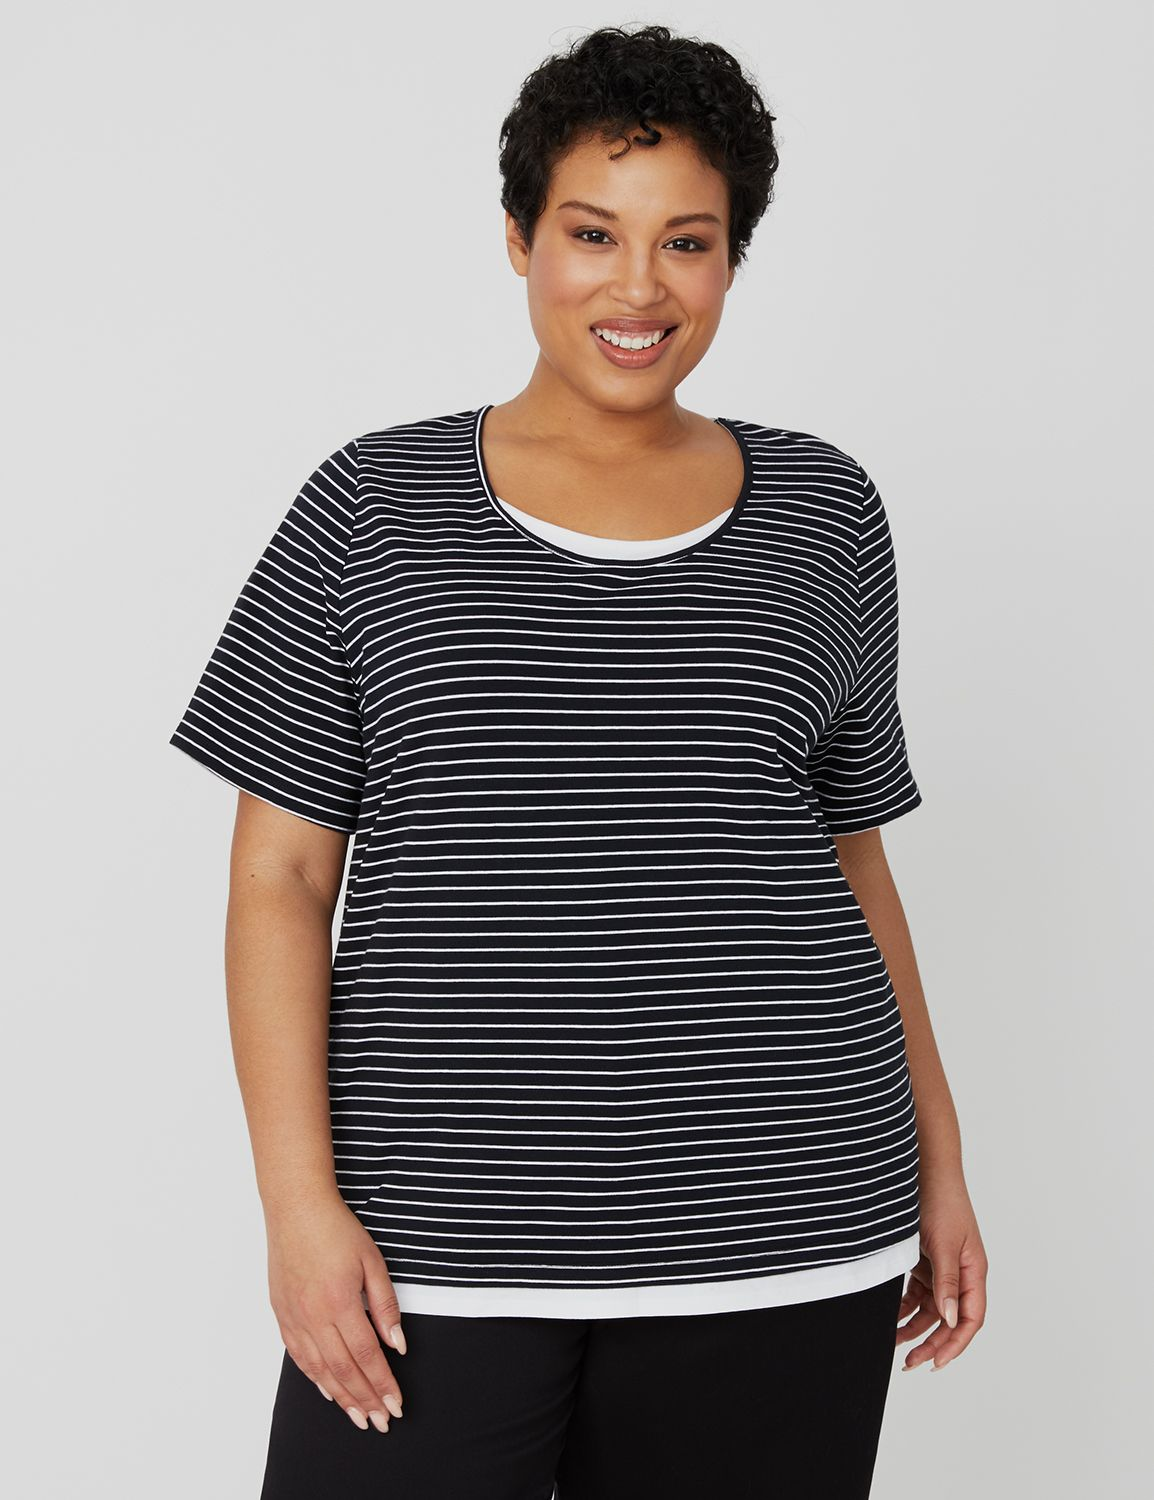 Suprema Duet Stripe Tee 1092768 SUPREMA SS- STRIPE 2FOR MP-300104397